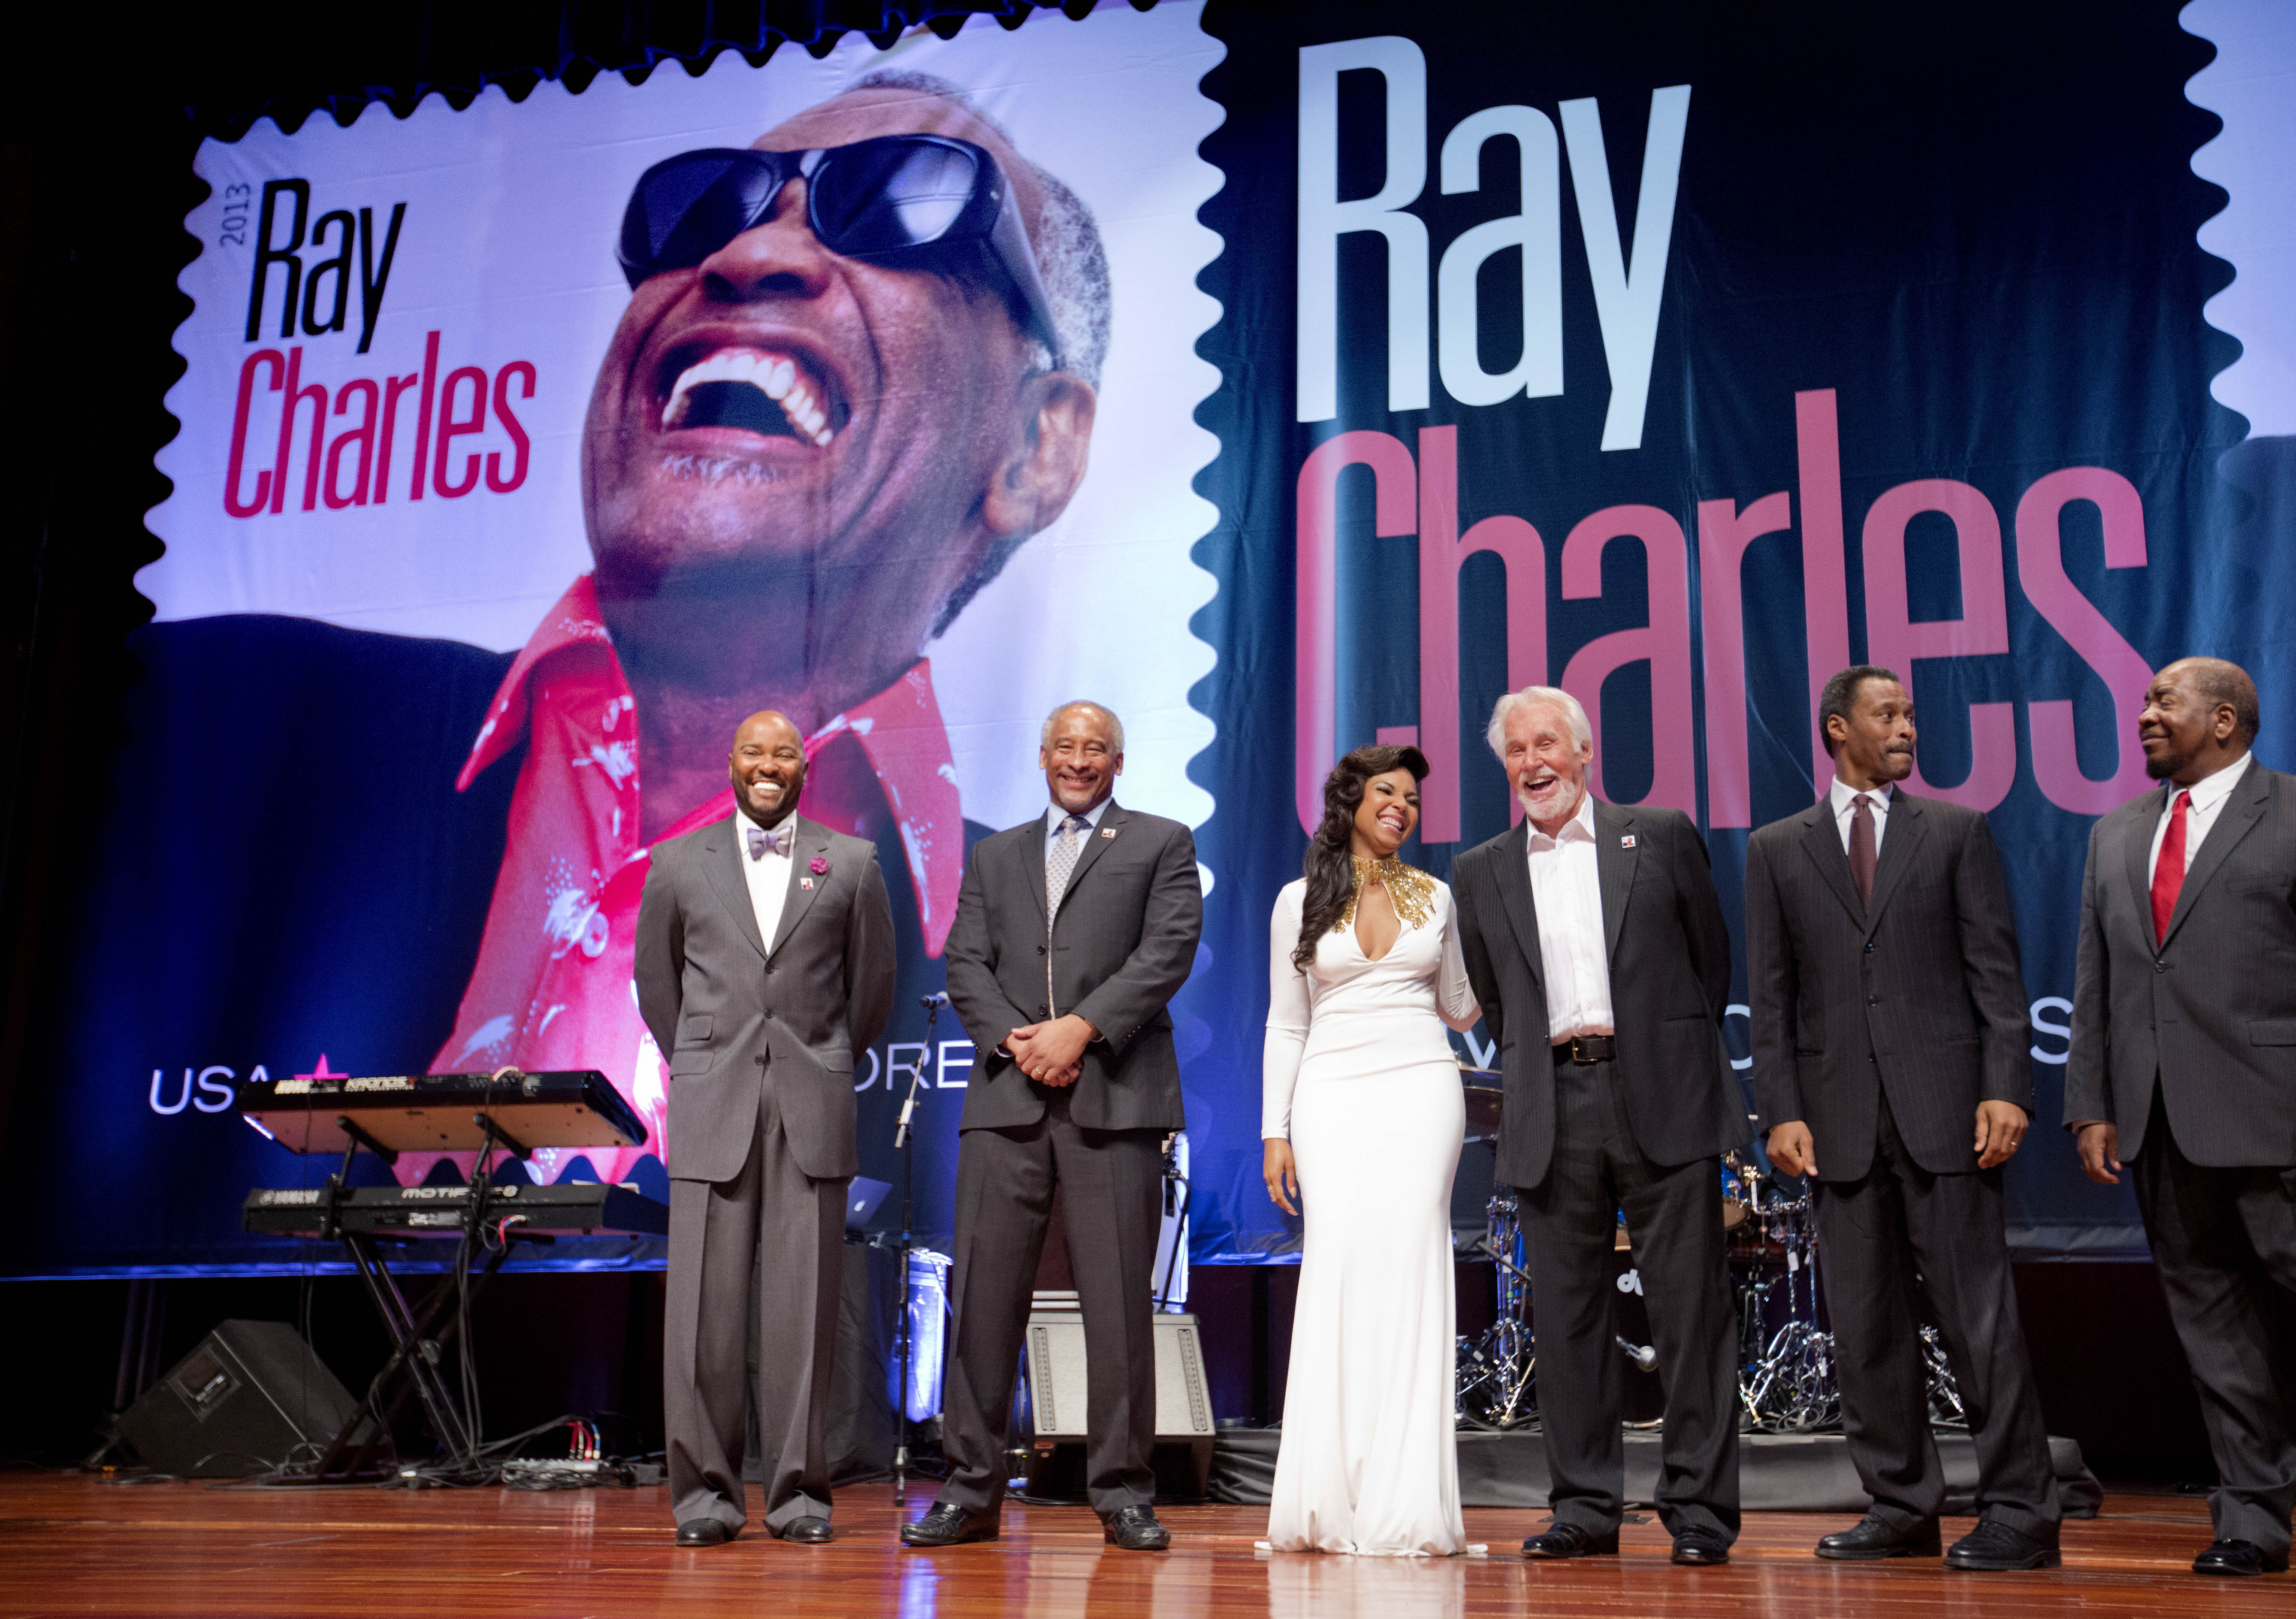 """Postal Service officials unveiled a new stamp featuring musician Ray Charles at Morehouse College in Atlanta on Monday. It is part of the """"Music Icons Forever"""" series."""